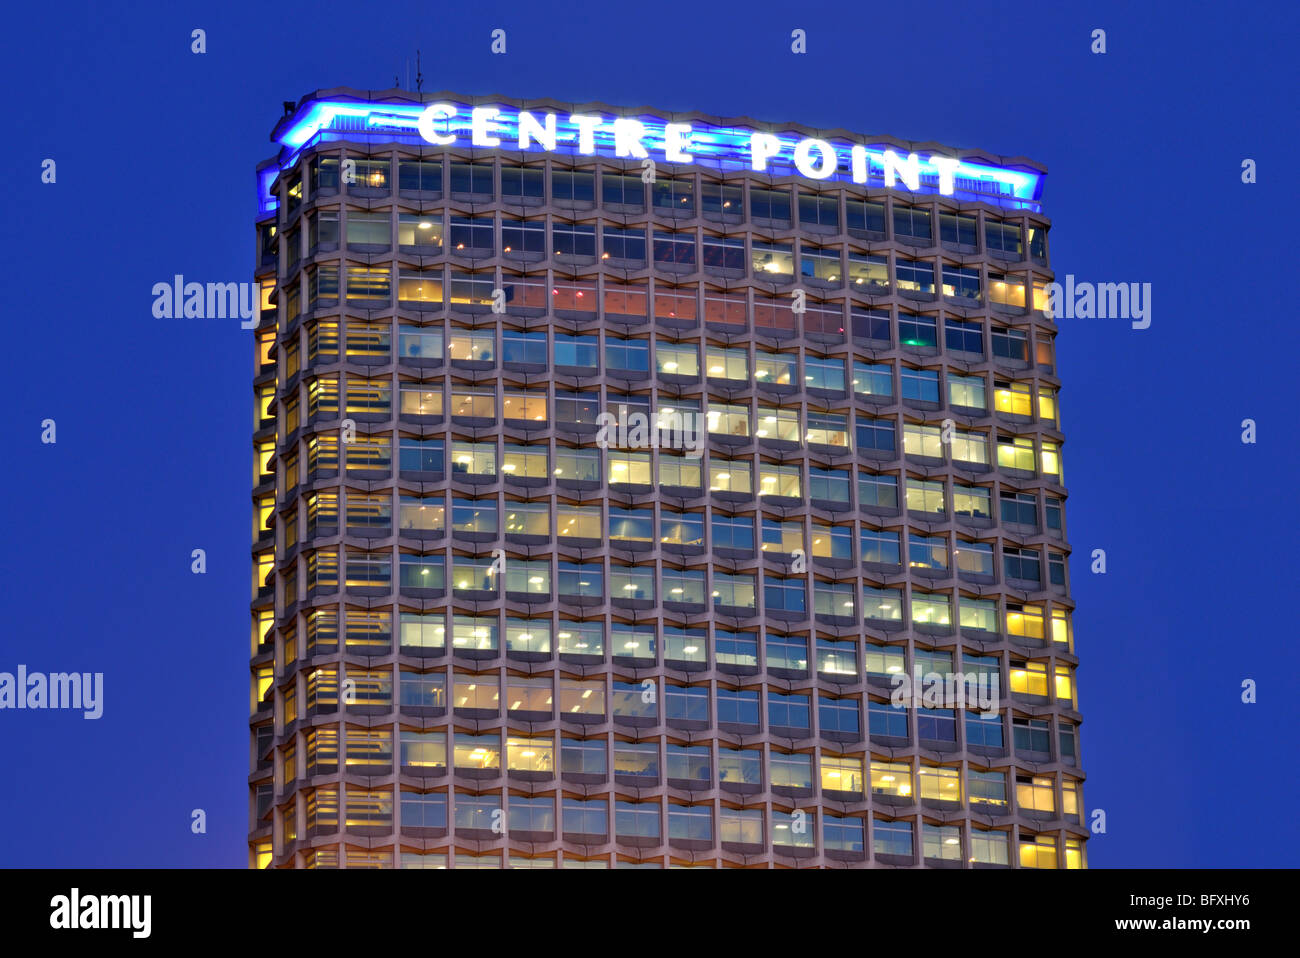 Night view Centre Point building, interchange of New Oxford Street and Tottenham Court Road, London, United Kingdom - Stock Image